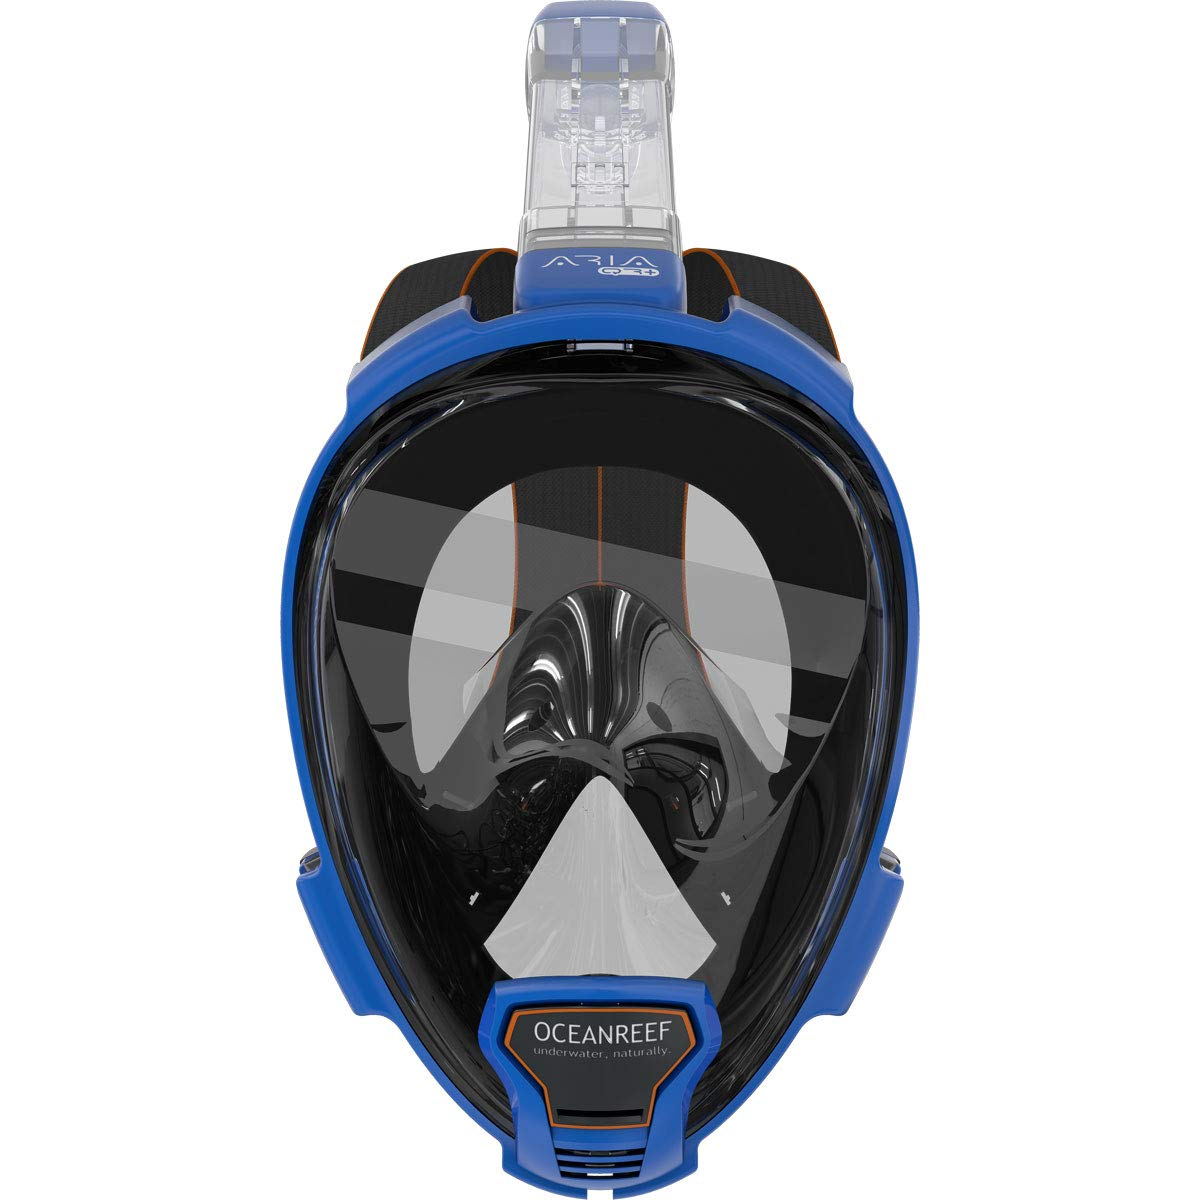 OCEAN REEF - Aria QR + Quick Release Snorkeling Mask - Full Face Snorkeling Mask - 180 Degree Underwater Vision - 5 Different Colors and 3 Sizes - Blue Color - Size M/L by OCEAN REEF